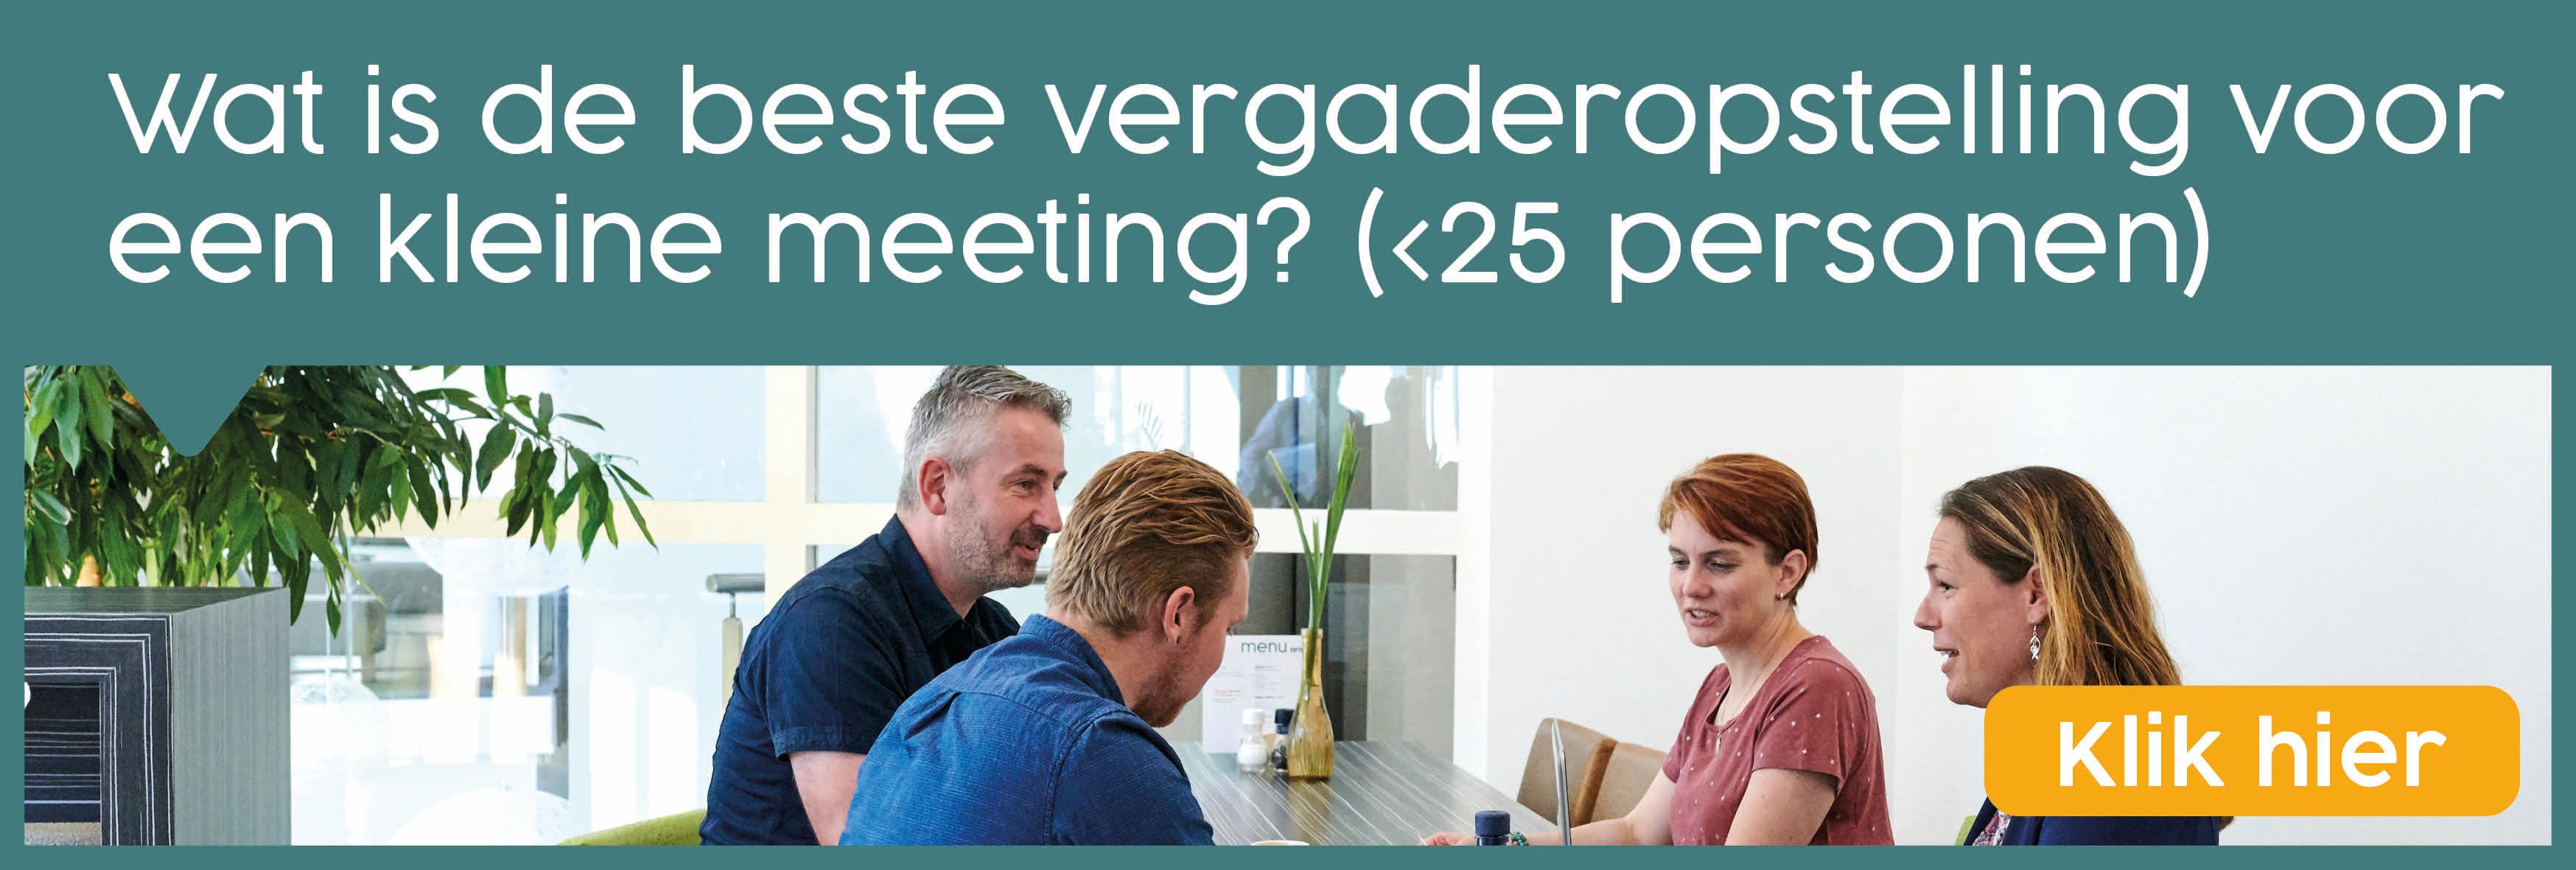 Vergaderopstelling Aristo meeting center